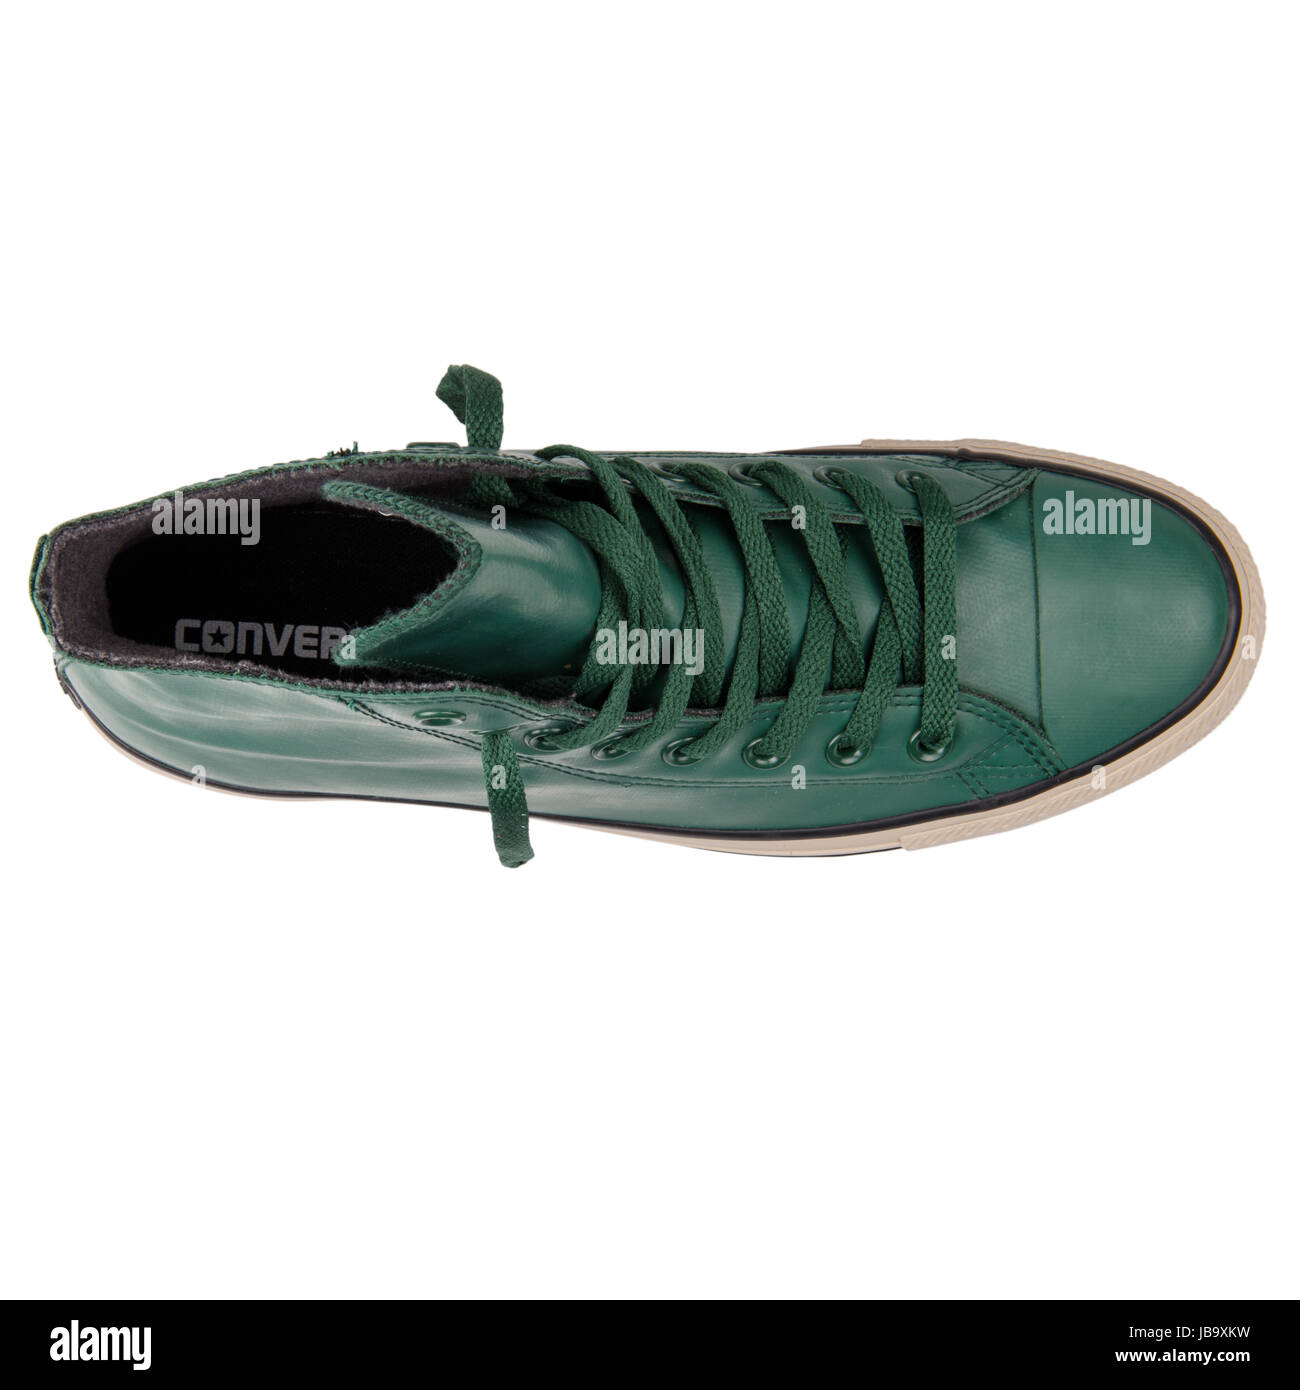 a4000dbe8a55 Converse Chuck Taylor All Star Hi Gloom Green Unisex Shoes - 149771C ...